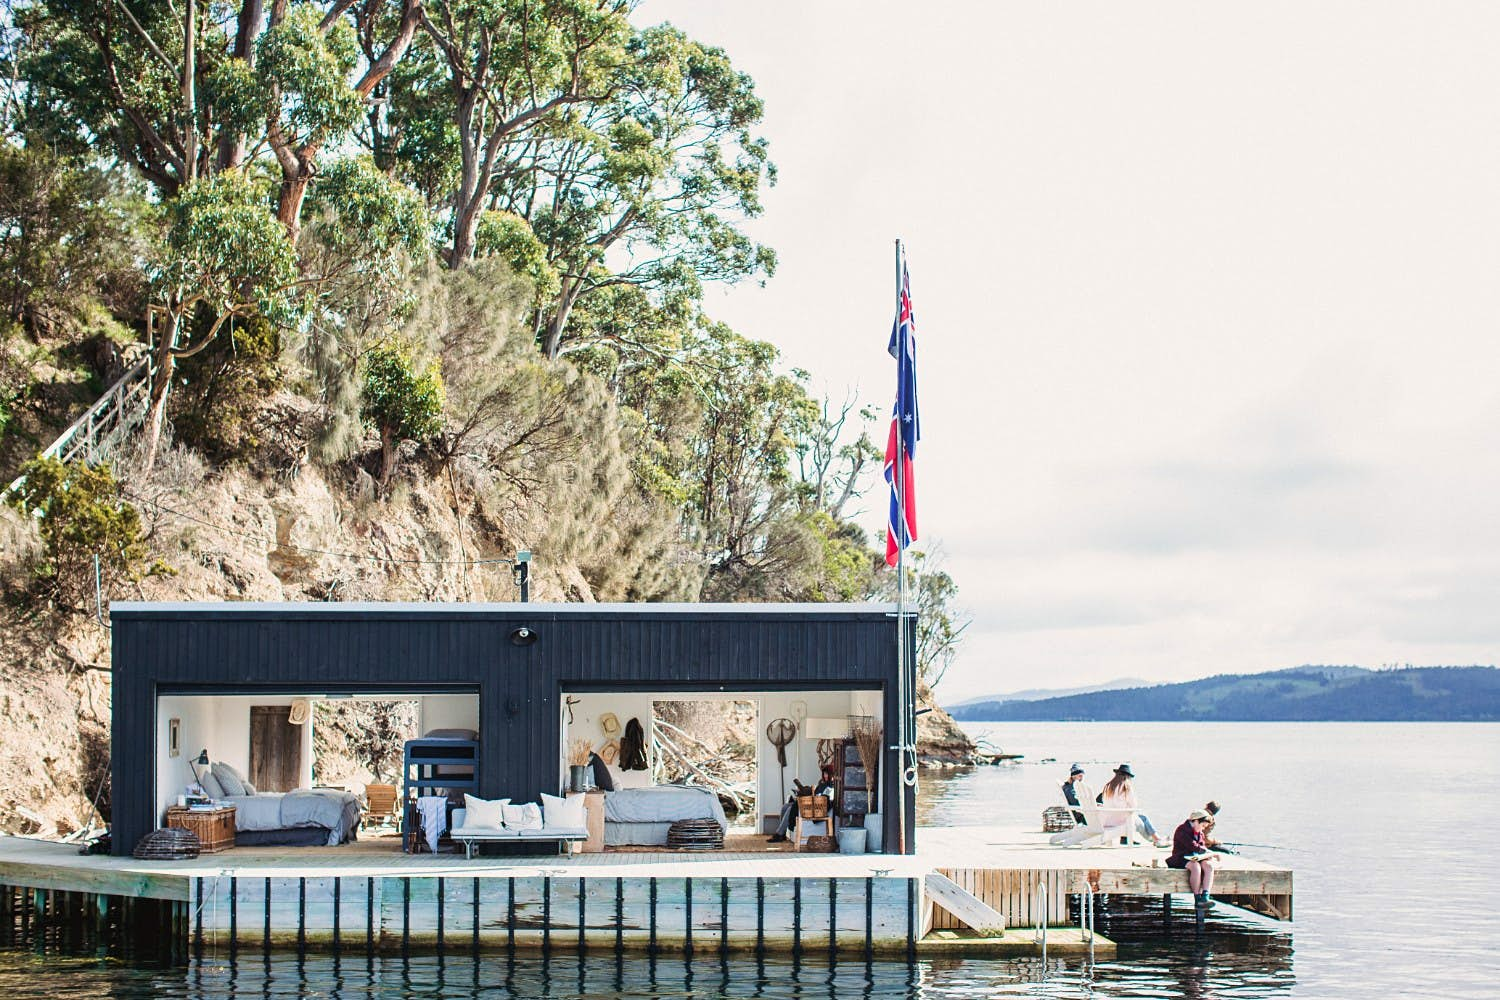 People sitting outside the Boathouse on Satellite Island in Tasmania